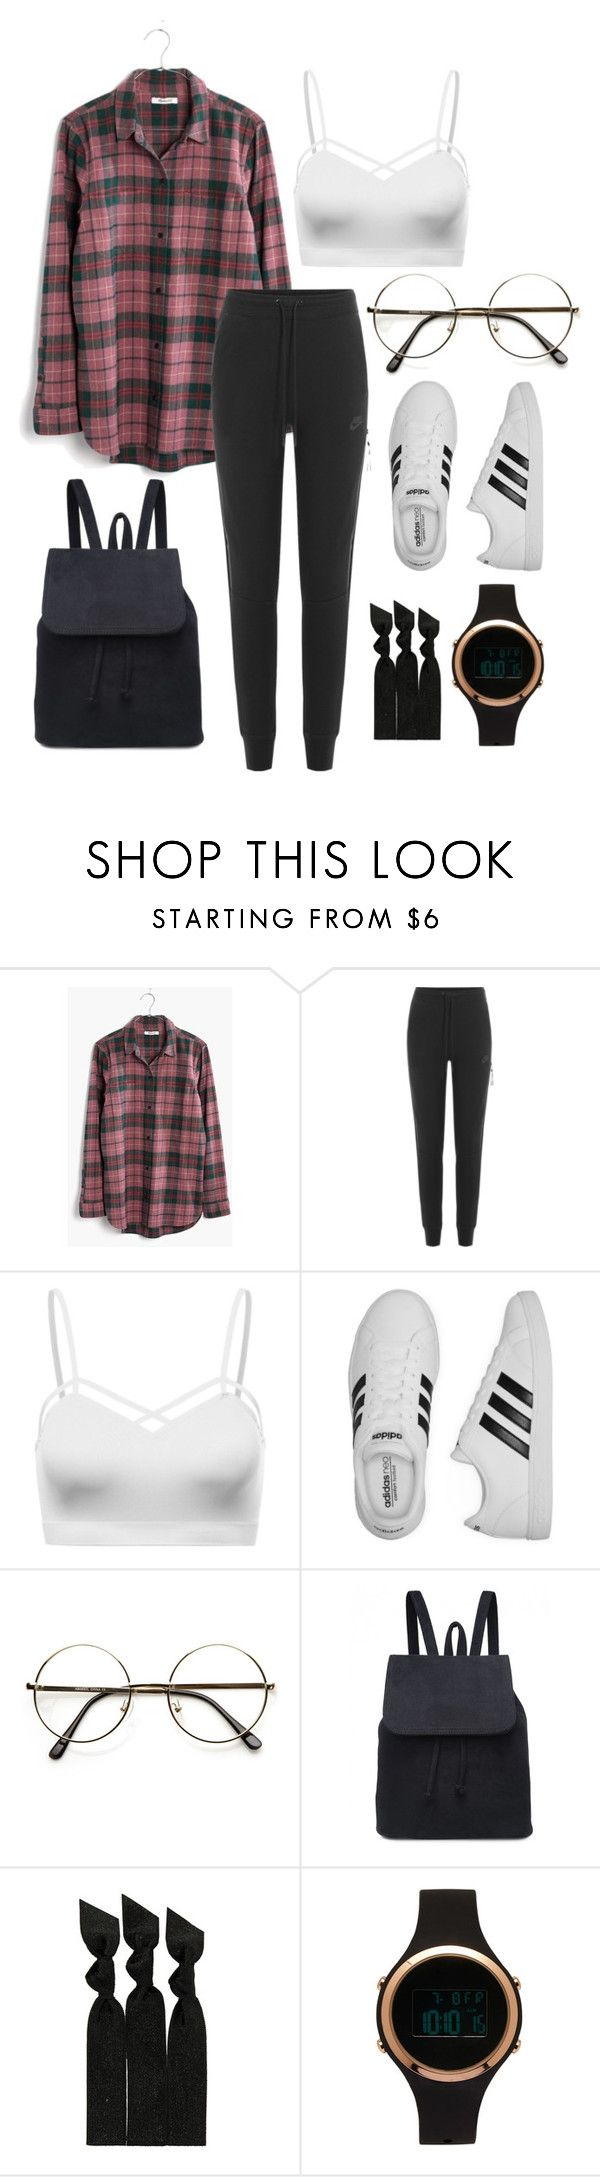 """""""casual.0.29"""" by joannachavez8 on Polyvore featuring Madewell, NIKE, adidas, ZeroUV, Emi-Jay and Aéropostale"""